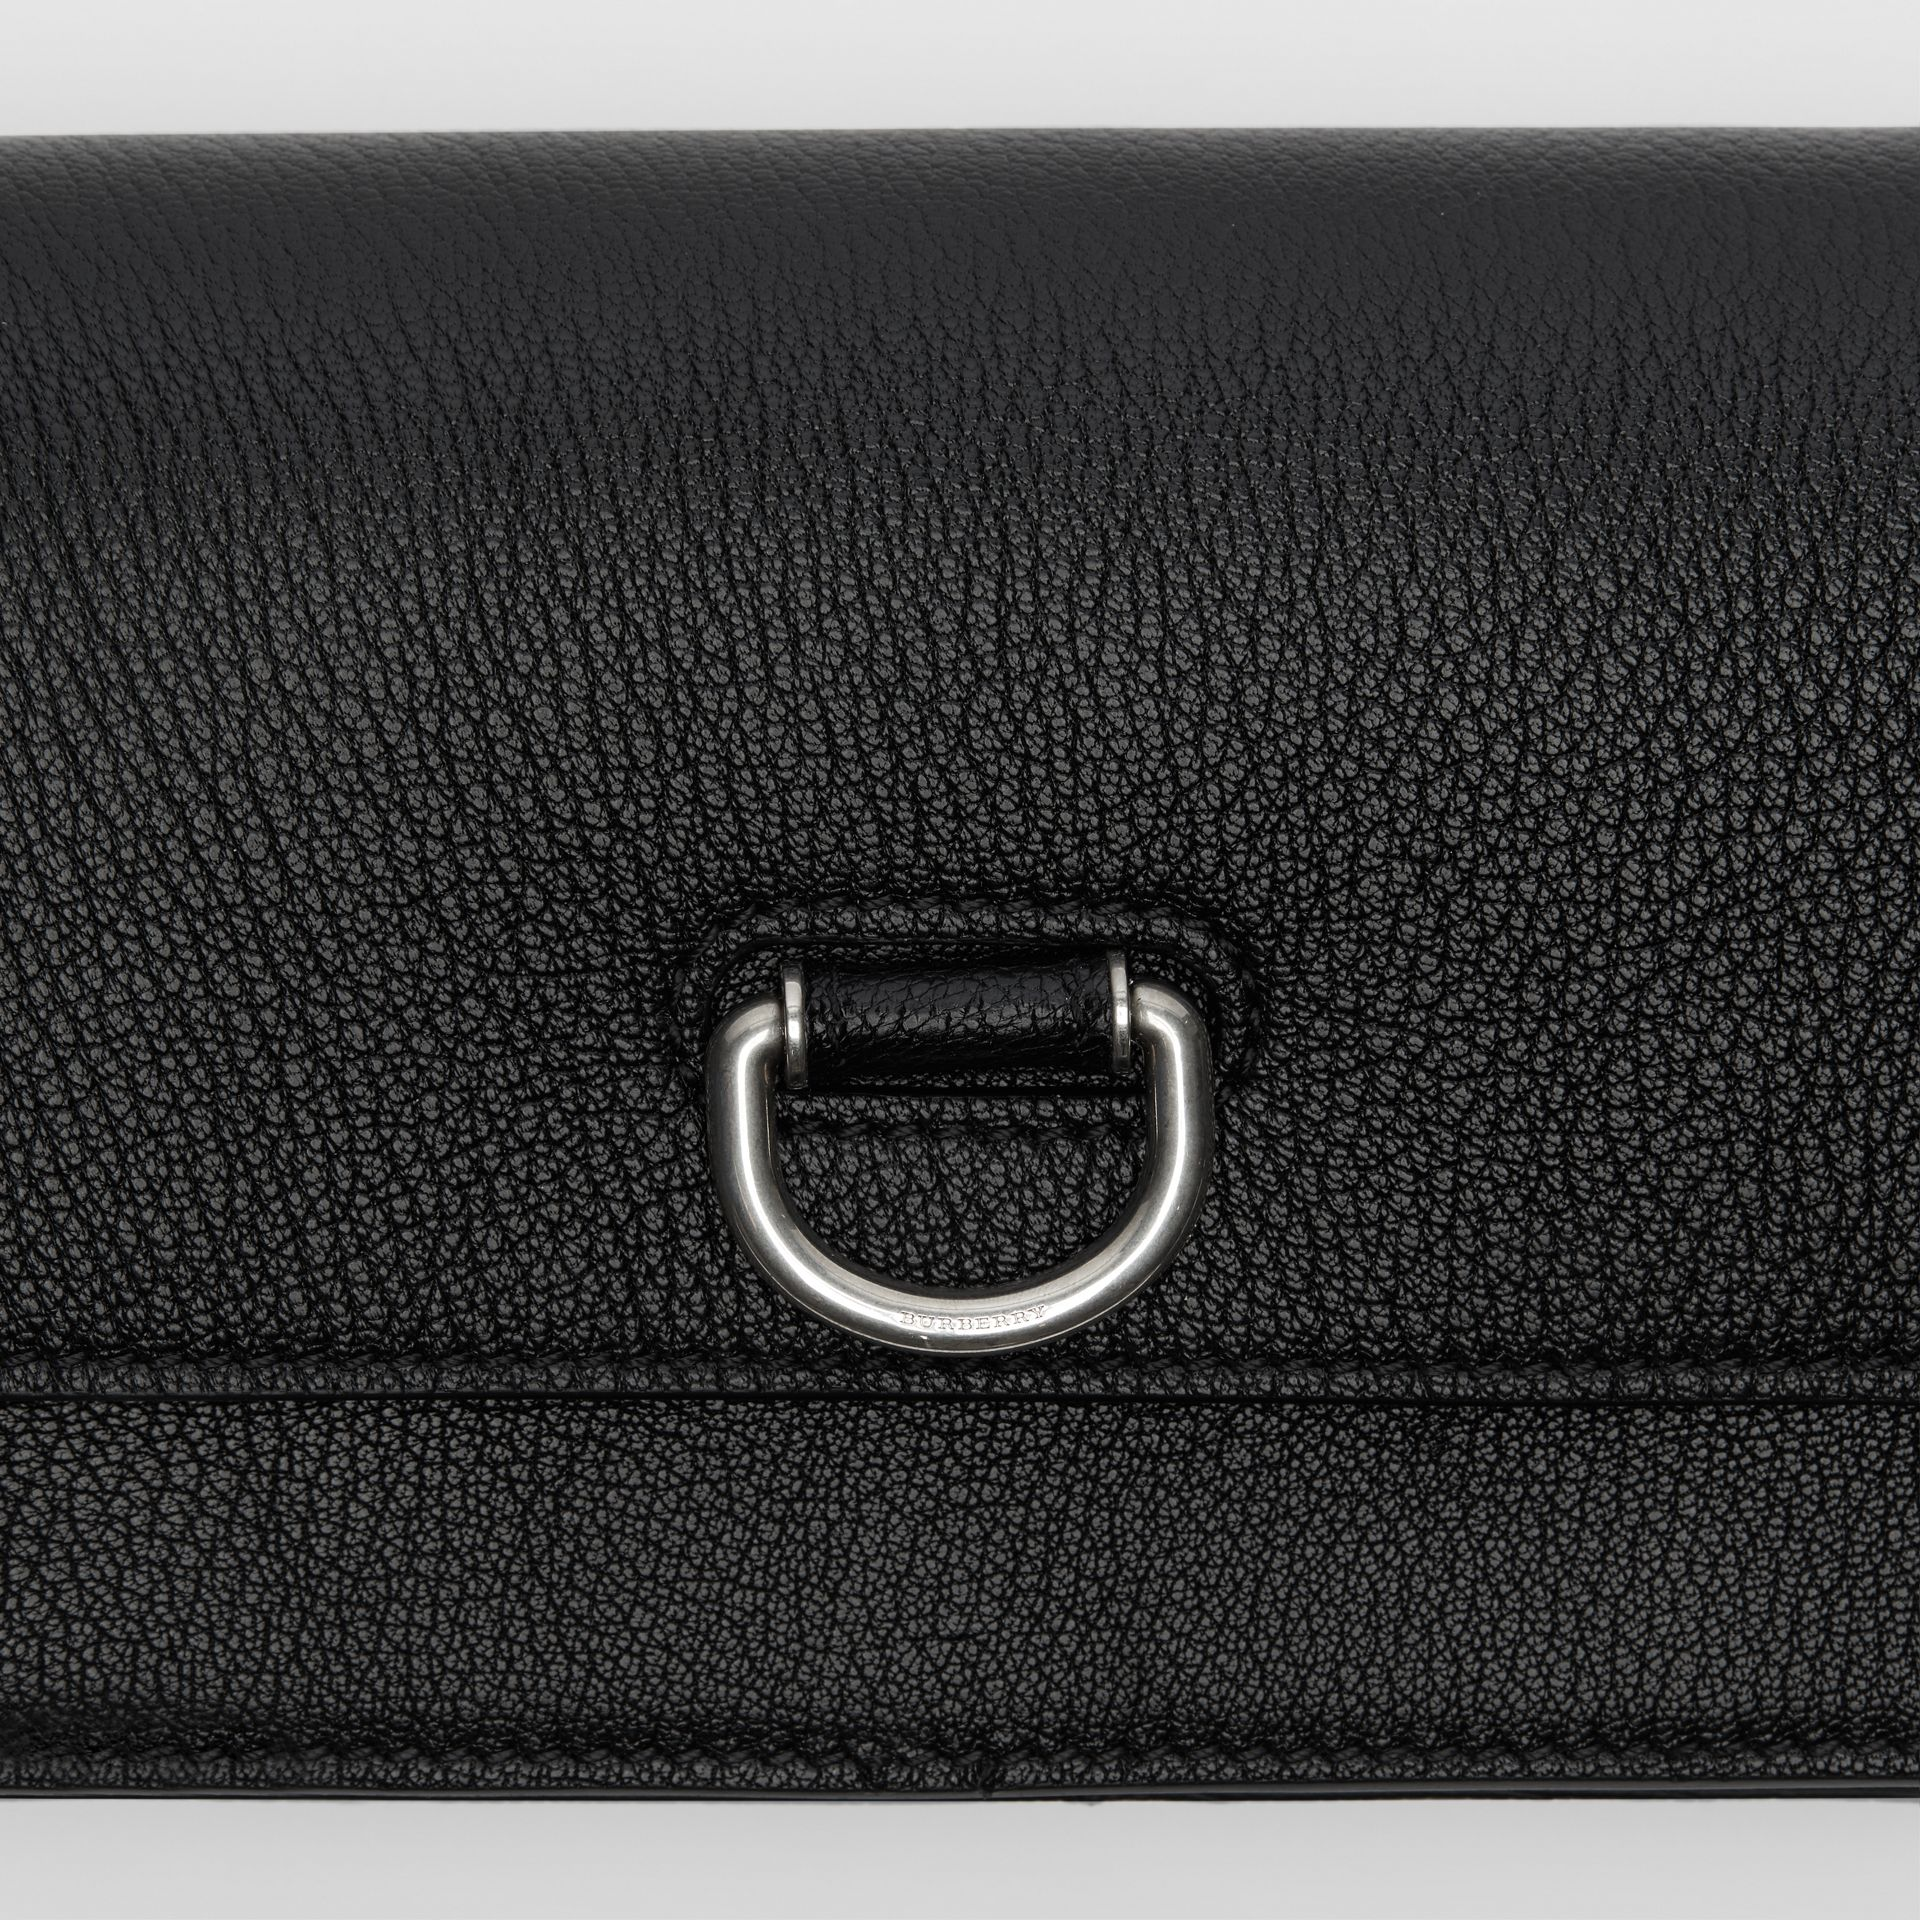 Mini sac The D-ring en cuir (Noir) - Femme | Burberry Canada - photo de la galerie 1